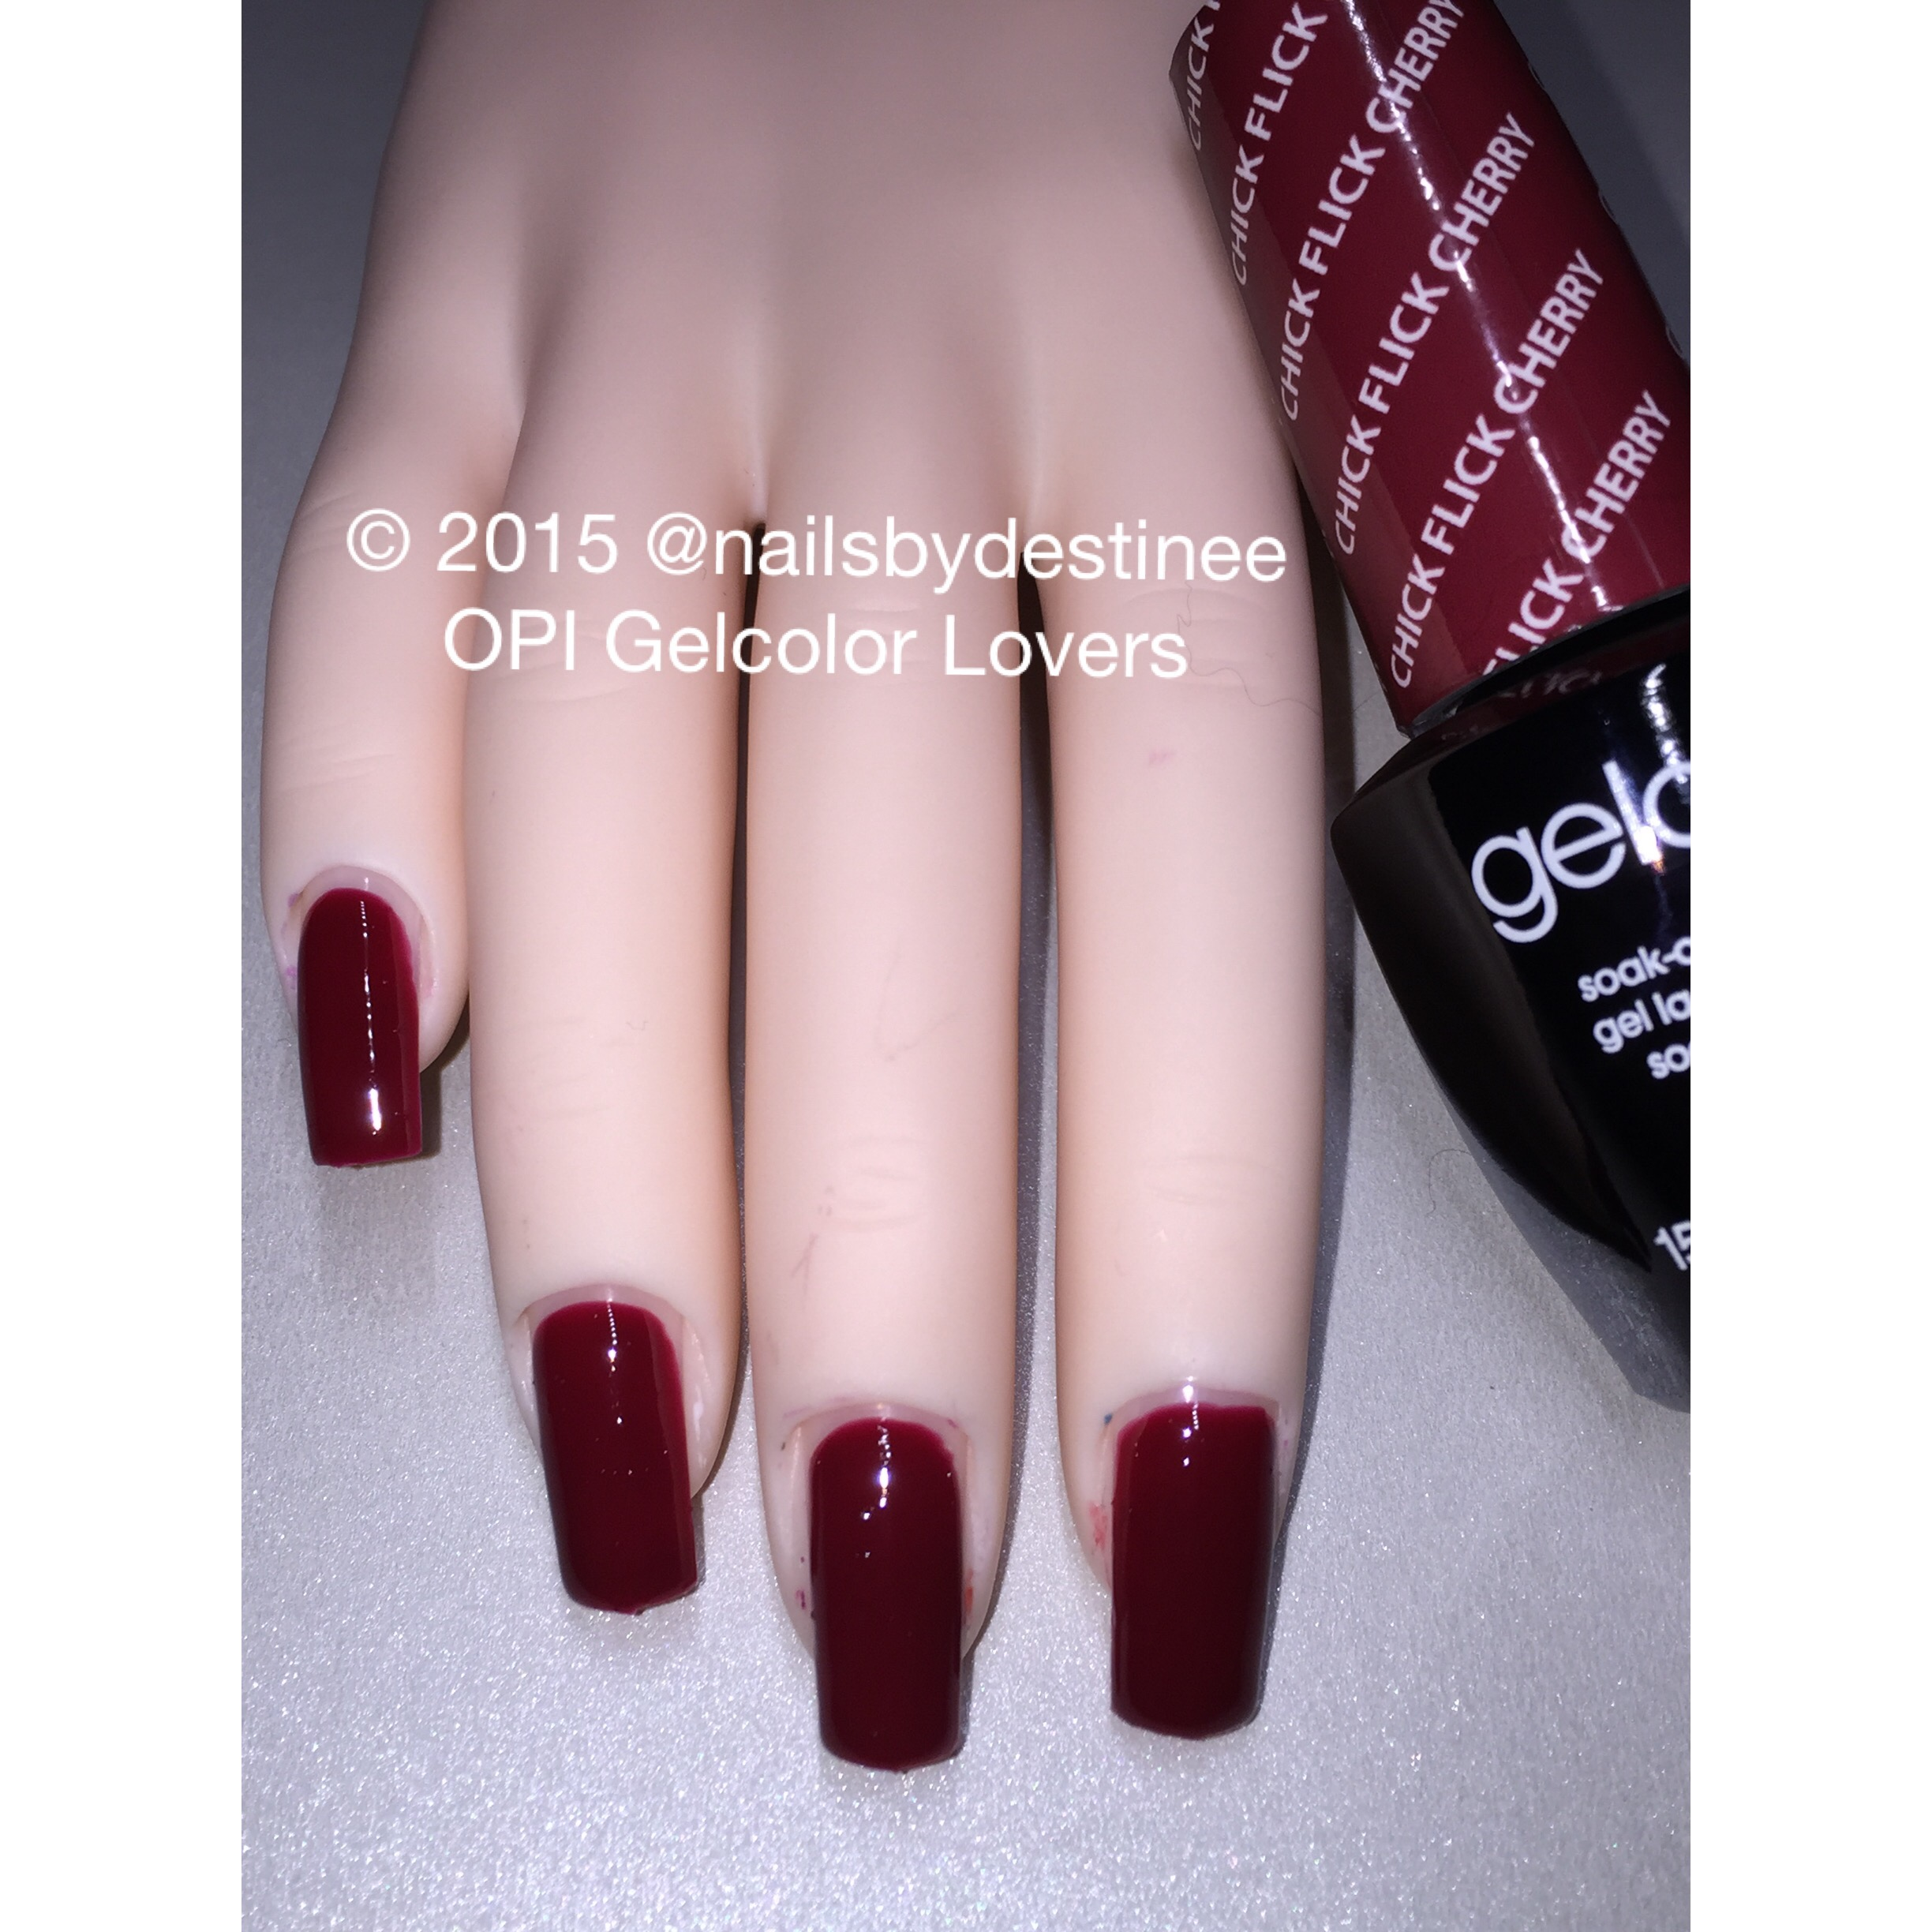 IMG_1329 – OPI GelColor Lovers